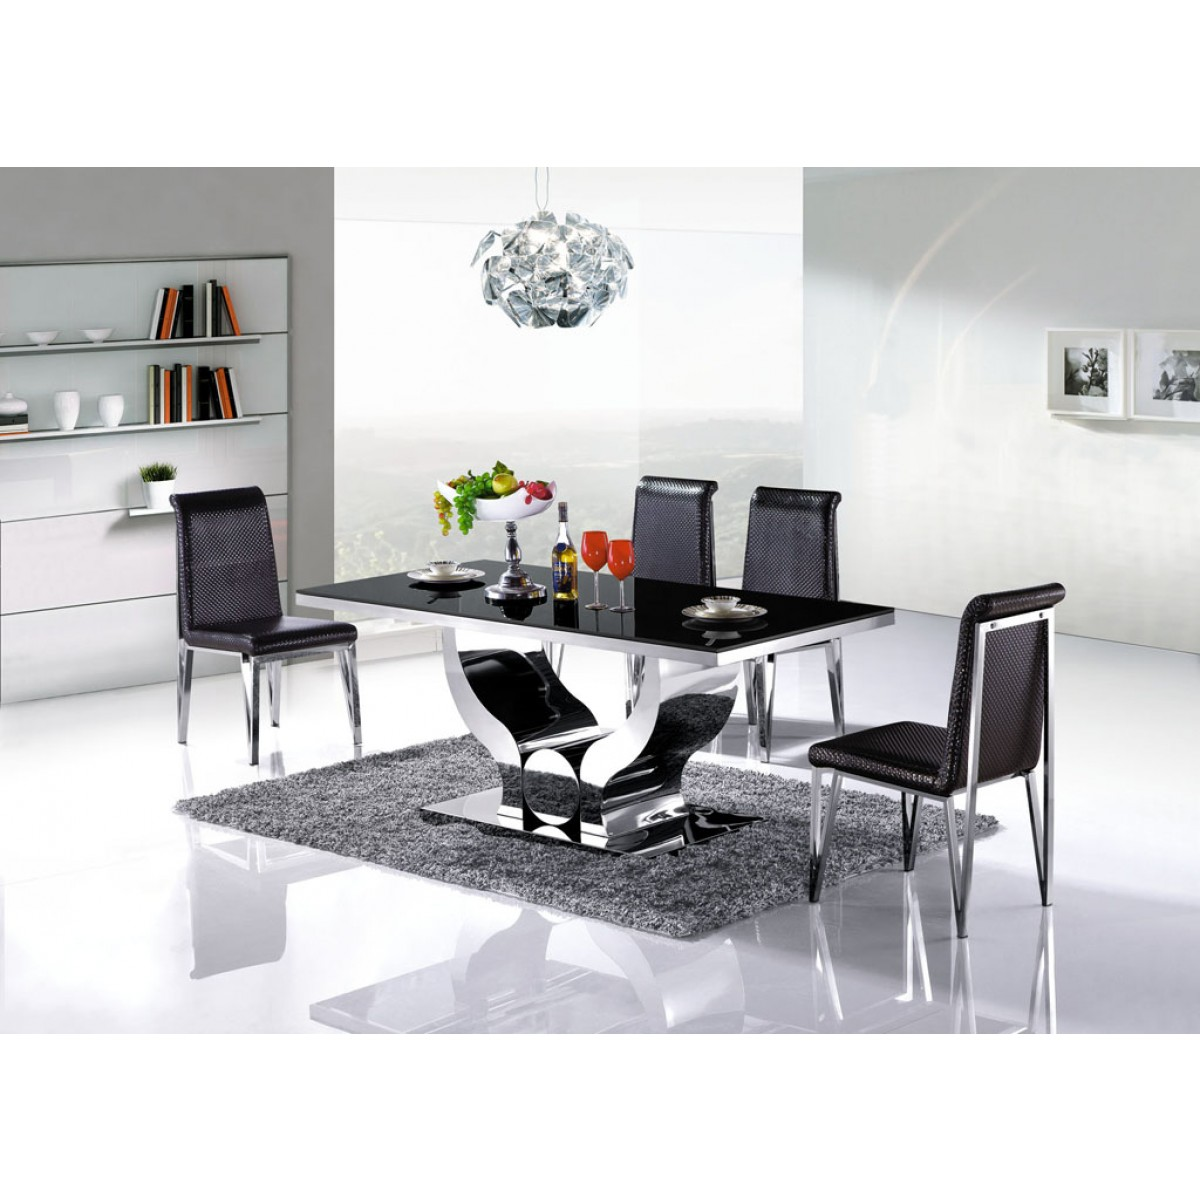 Table de salle manger en inox nova pop for Table de salle a manger verte